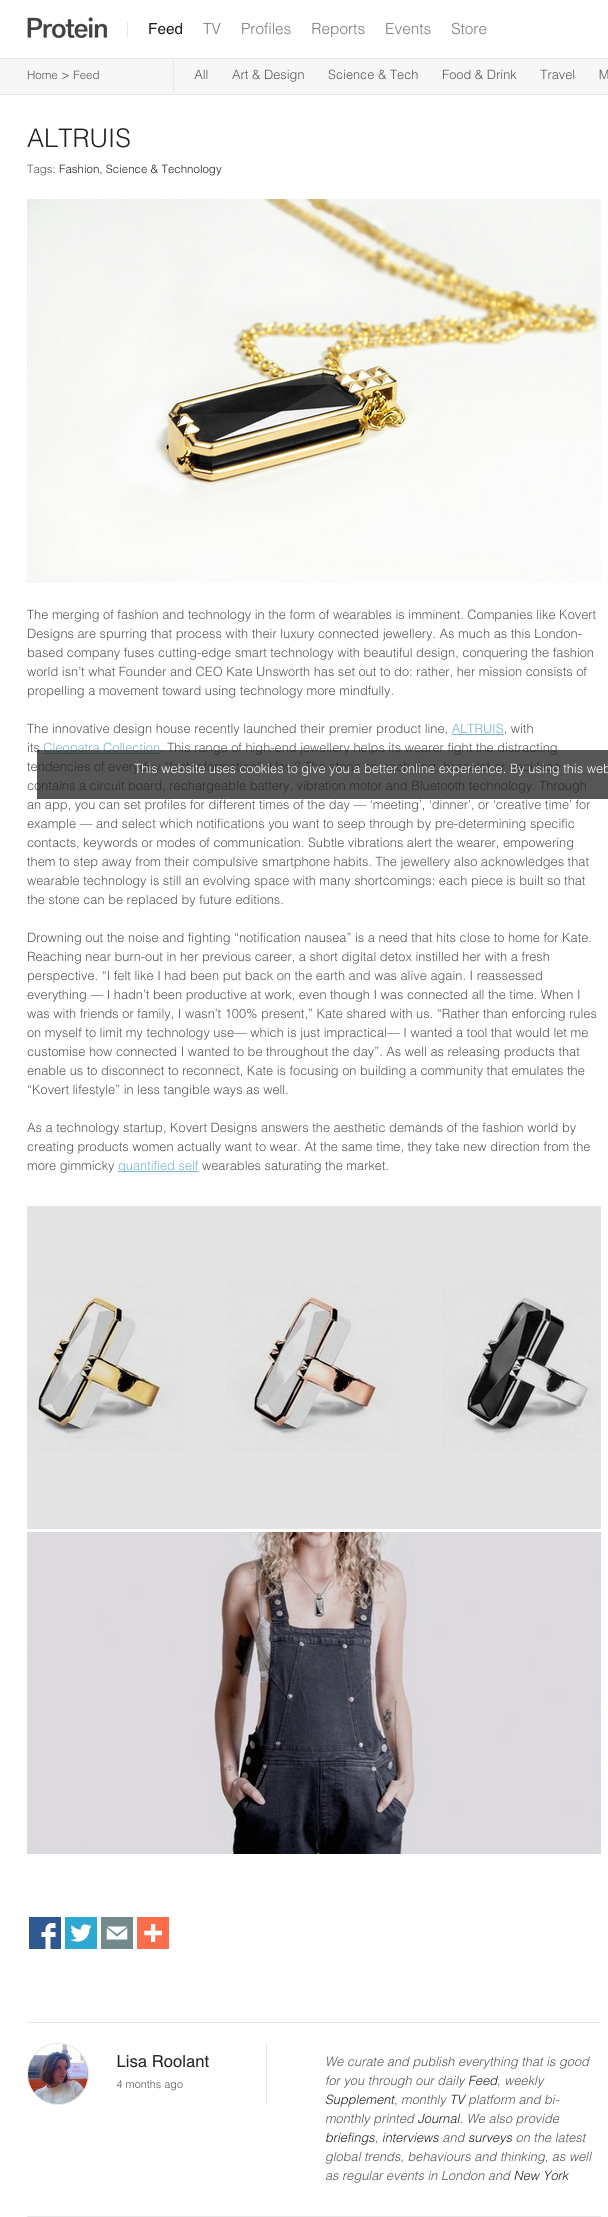 altruis-kovert-design-releases-their-premier-collection-of-luxury-connected-jewellery-that-aims-to-offer-tomorrow_s-answer-to-today_s-noise.png